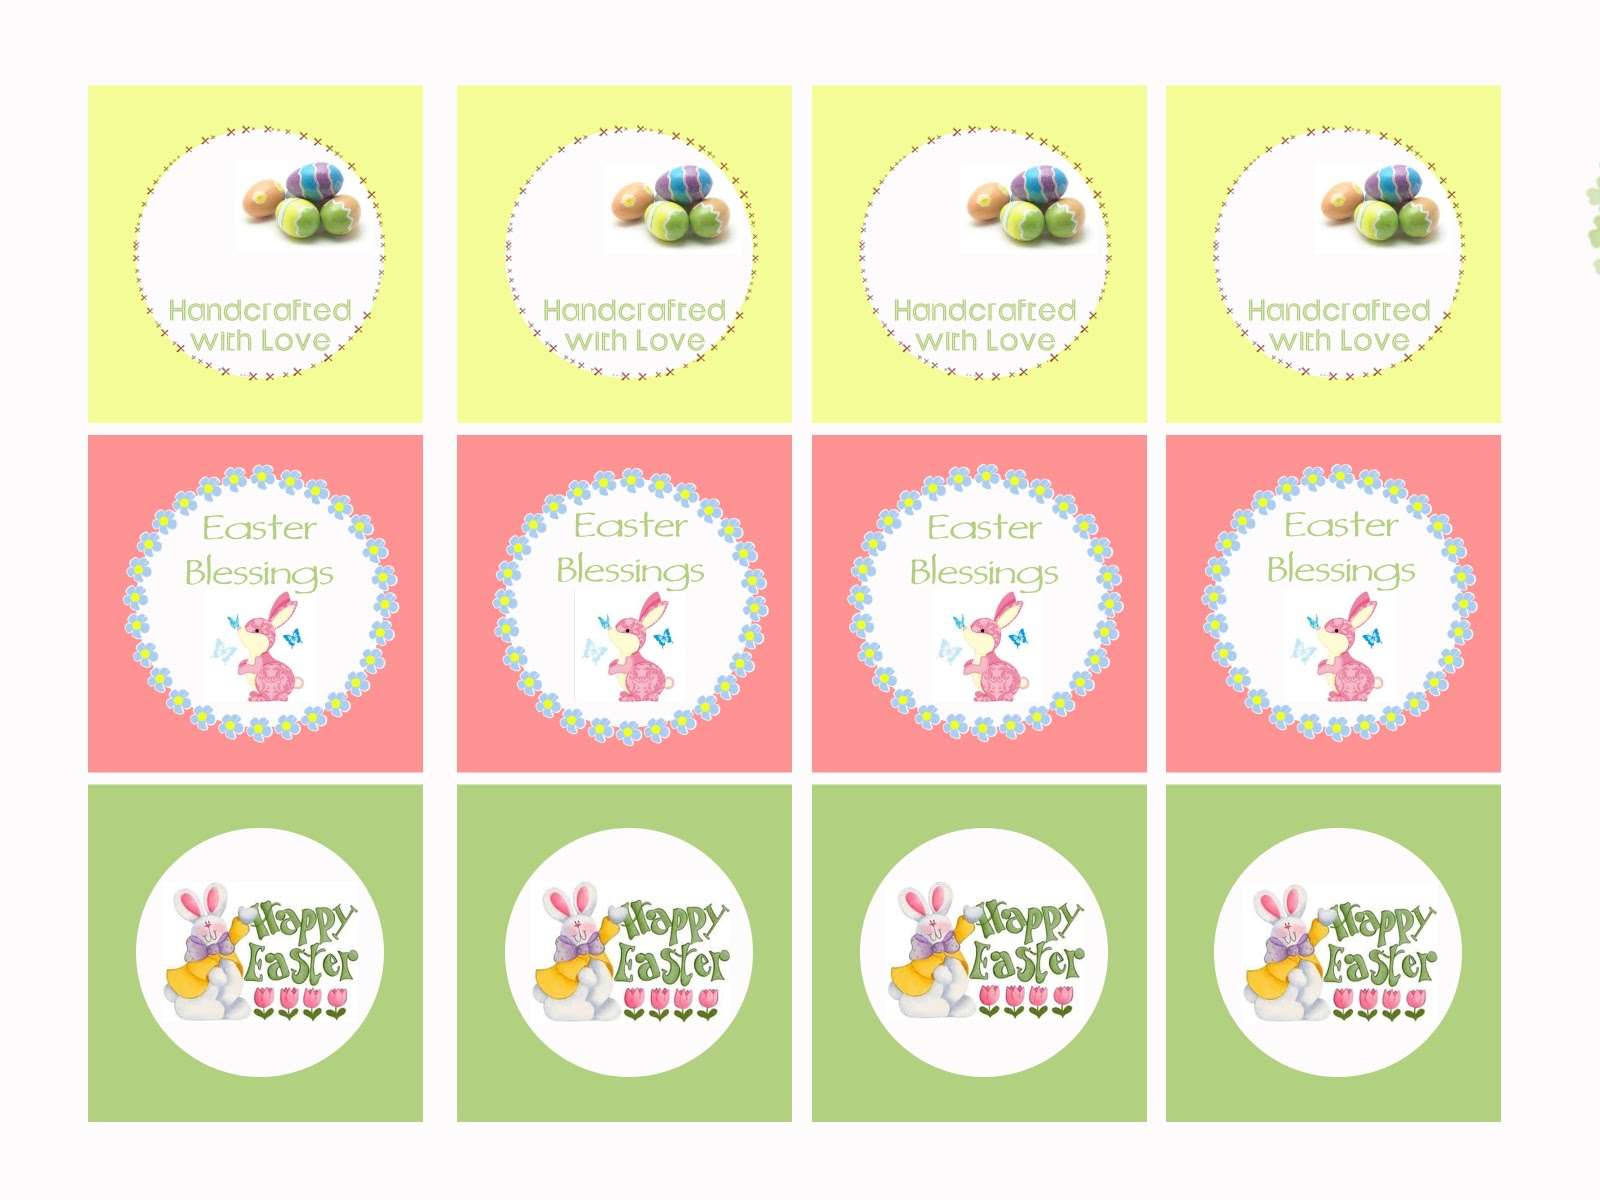 picture about Printable Easter Gift Tags identified as Printable Easter Present Tags Merry Xmas And Pleased Contemporary